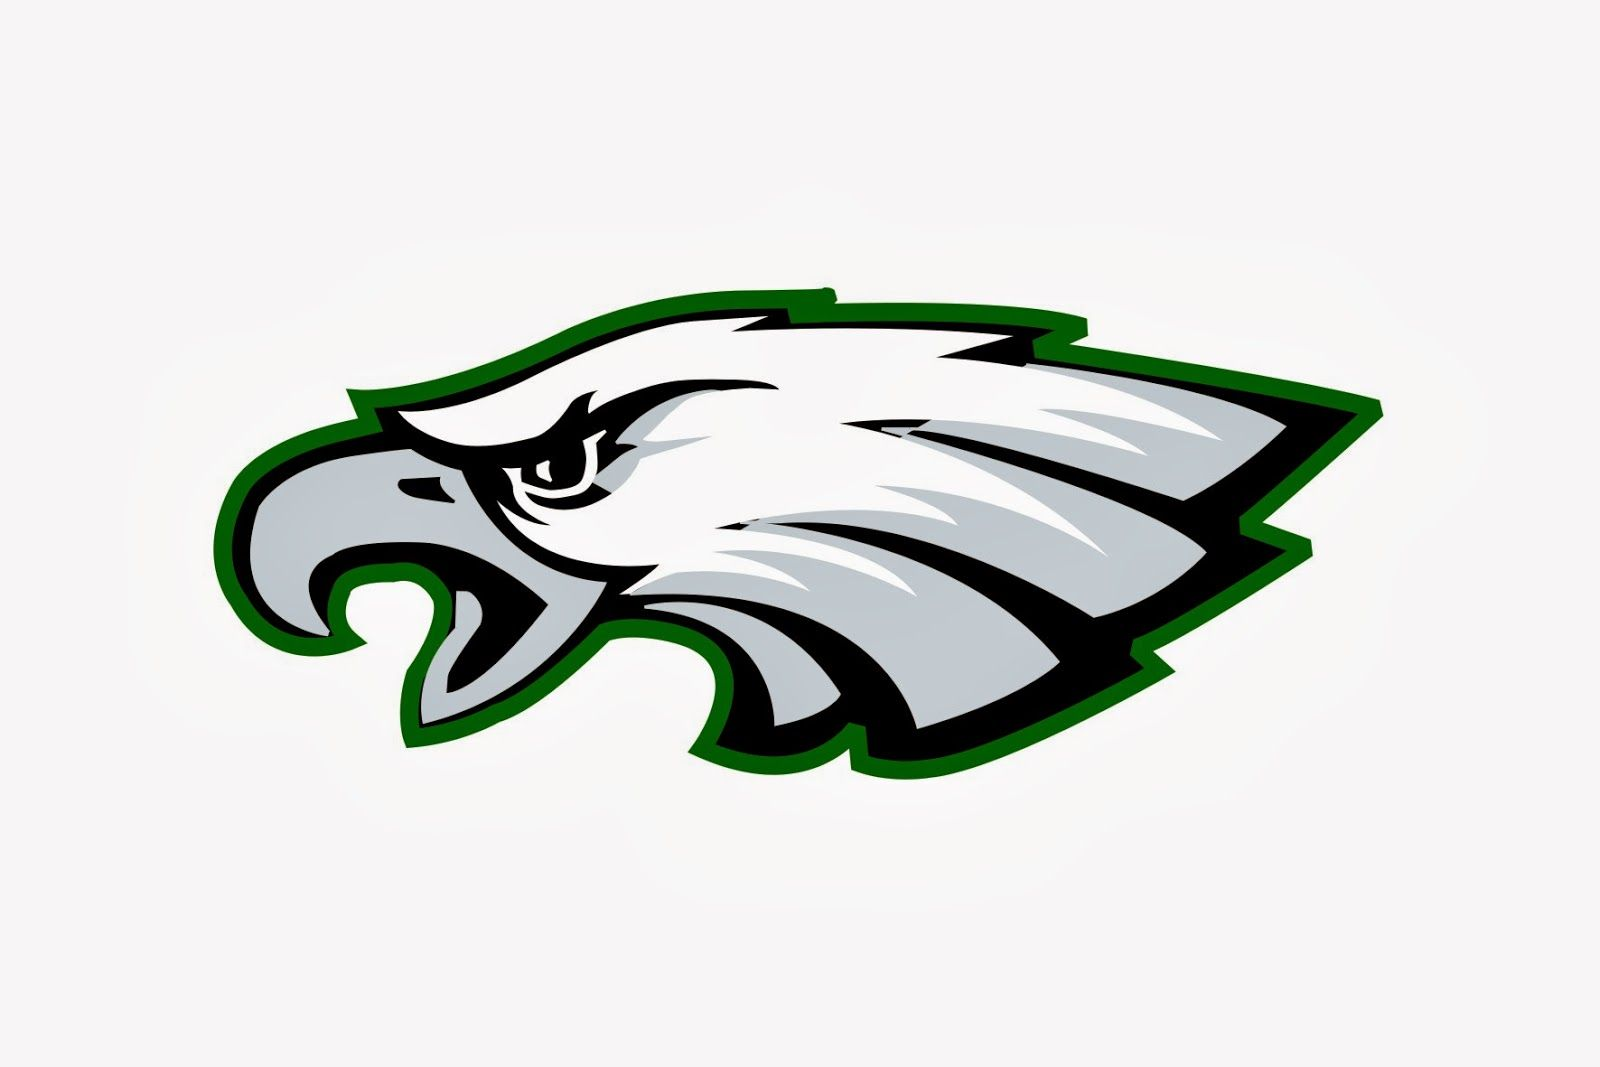 philadelphia eagles logo yahoo image search results nfl nba rh pinterest com philadelphia eagles clip art free philadelphia eagles clip art images